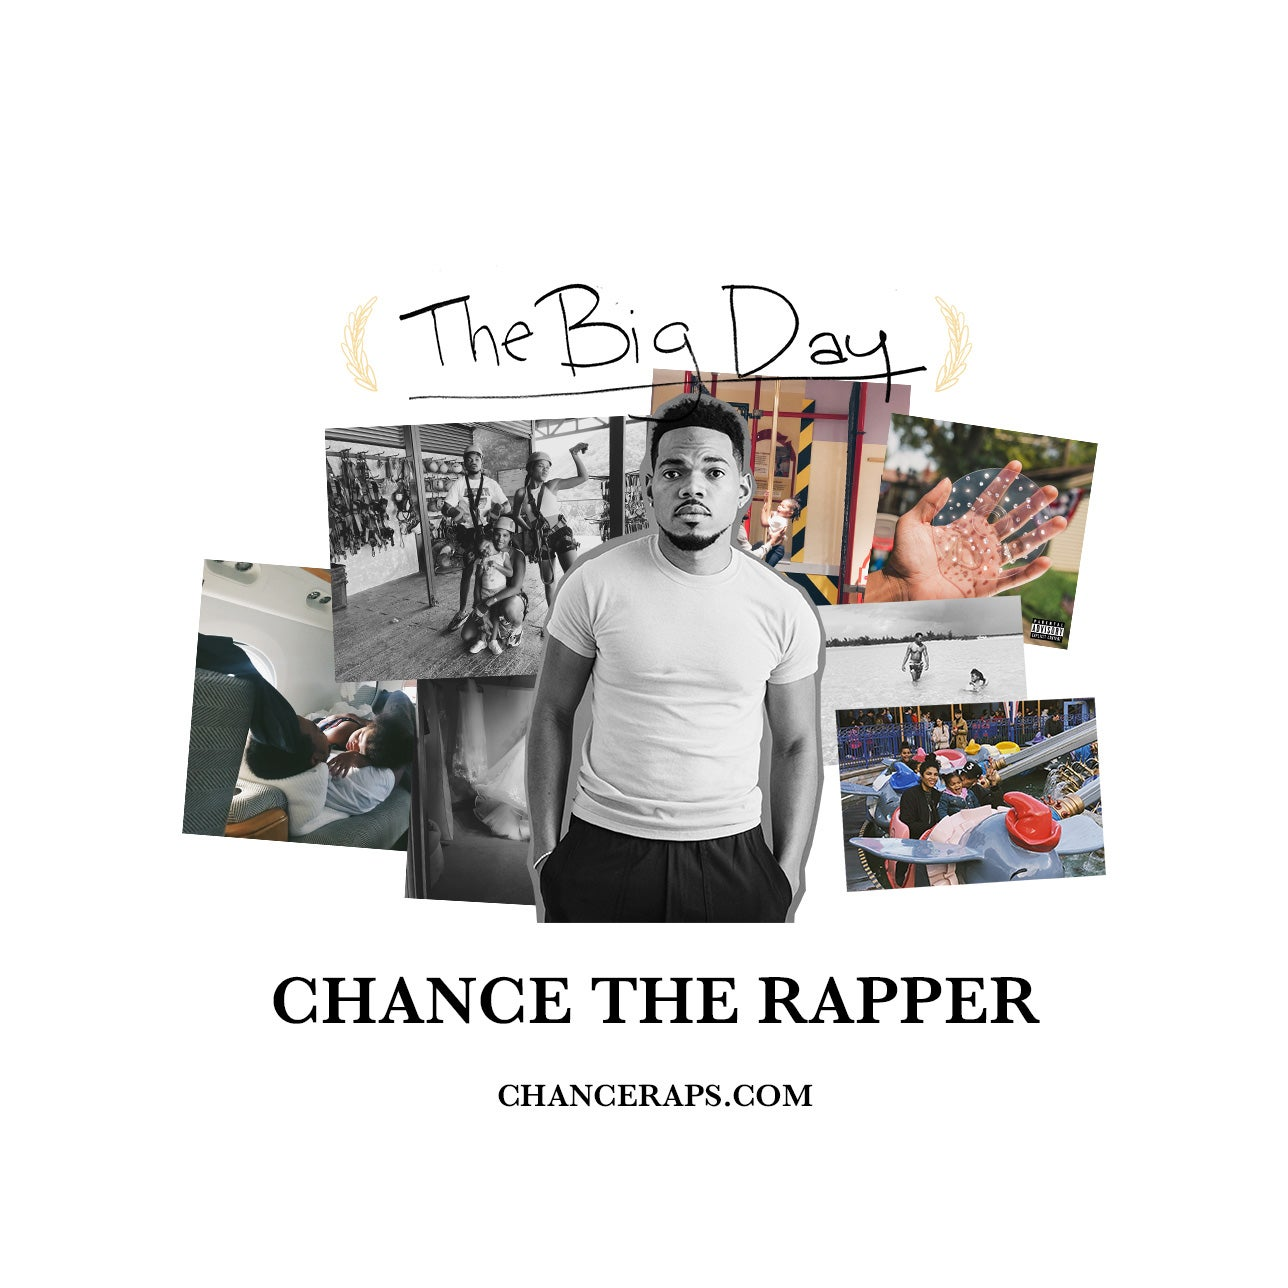 UPDATE - Chance the Rapper